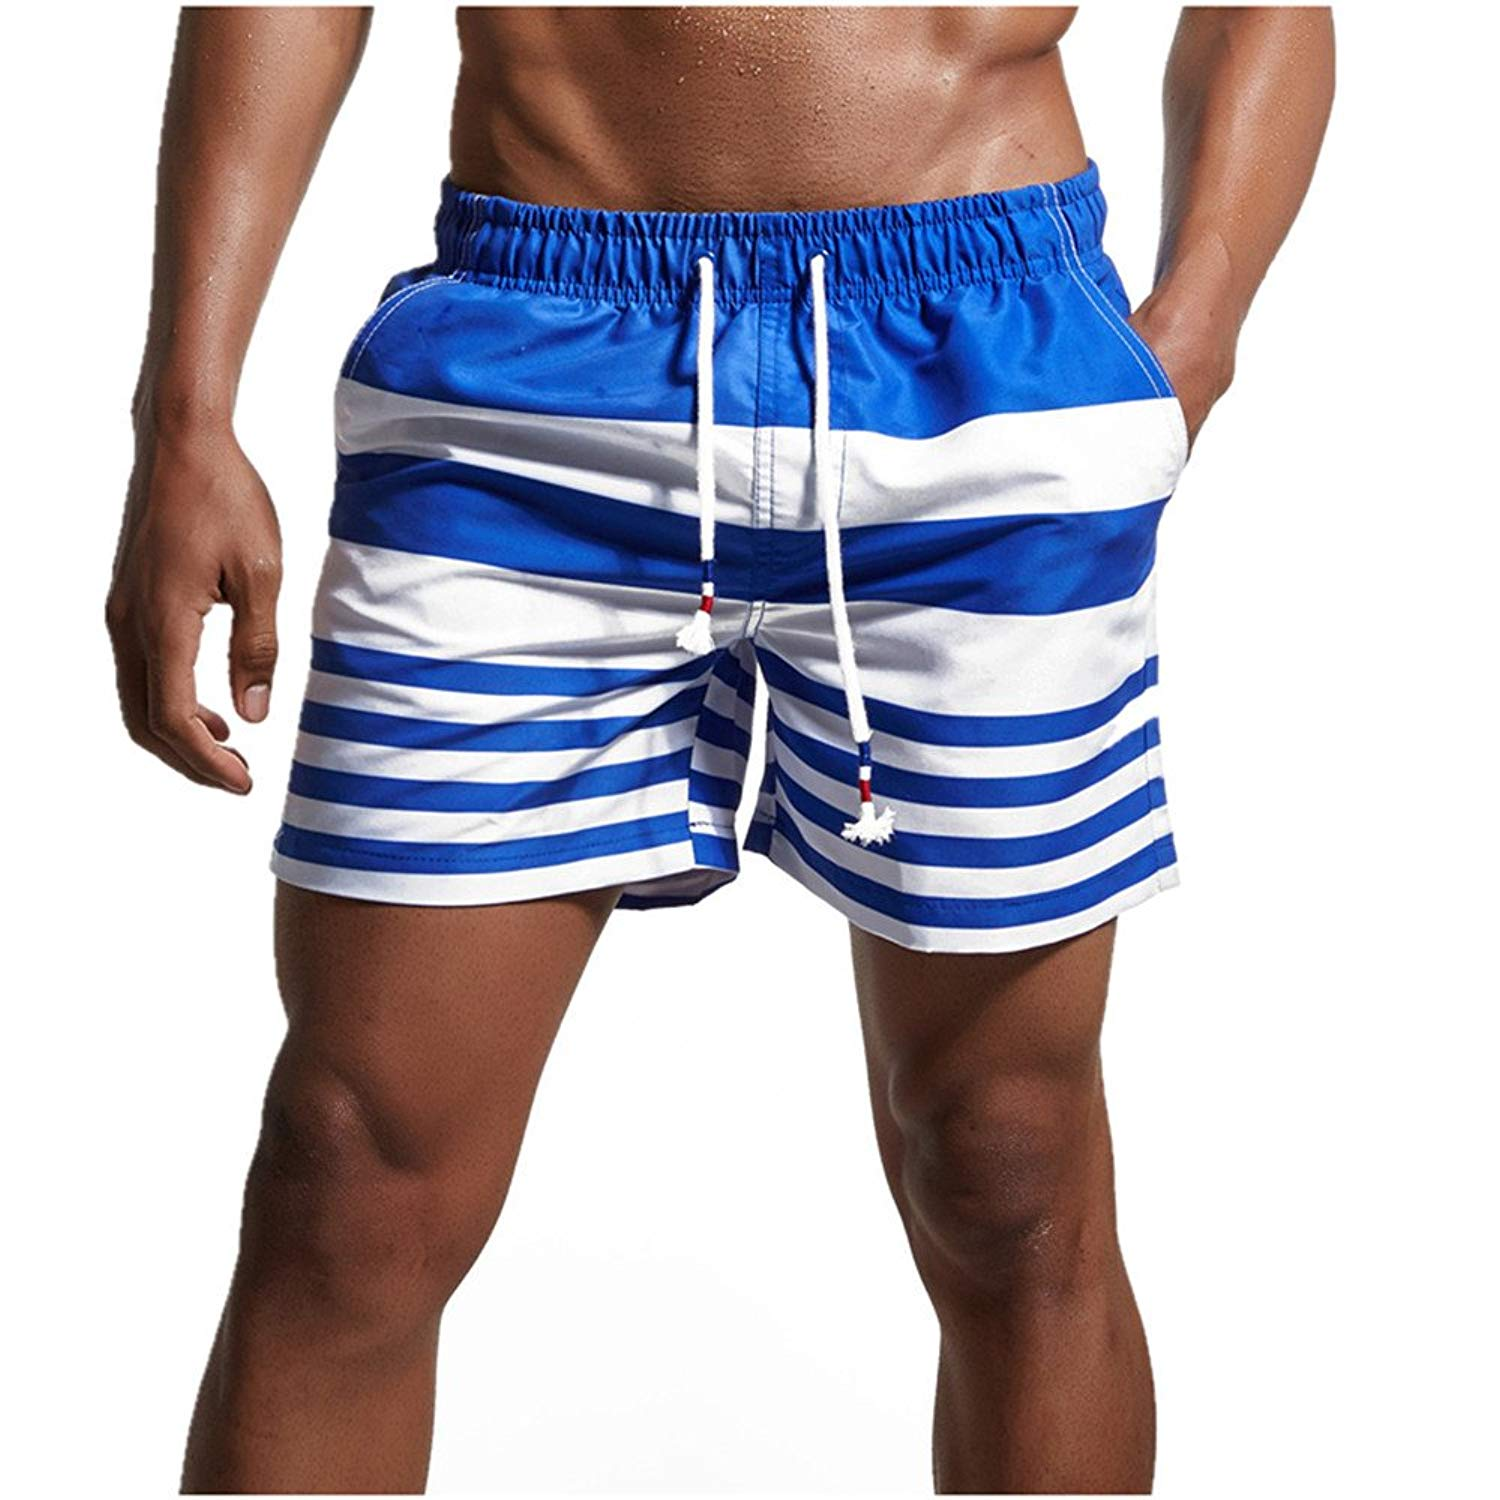 650c90fbe0097 Get Quotations · QEETUNG Men's Swim Trunks Stripe Swim Shorts Quickly Dry  Beach Broad Shorts With Pockets For Surfing